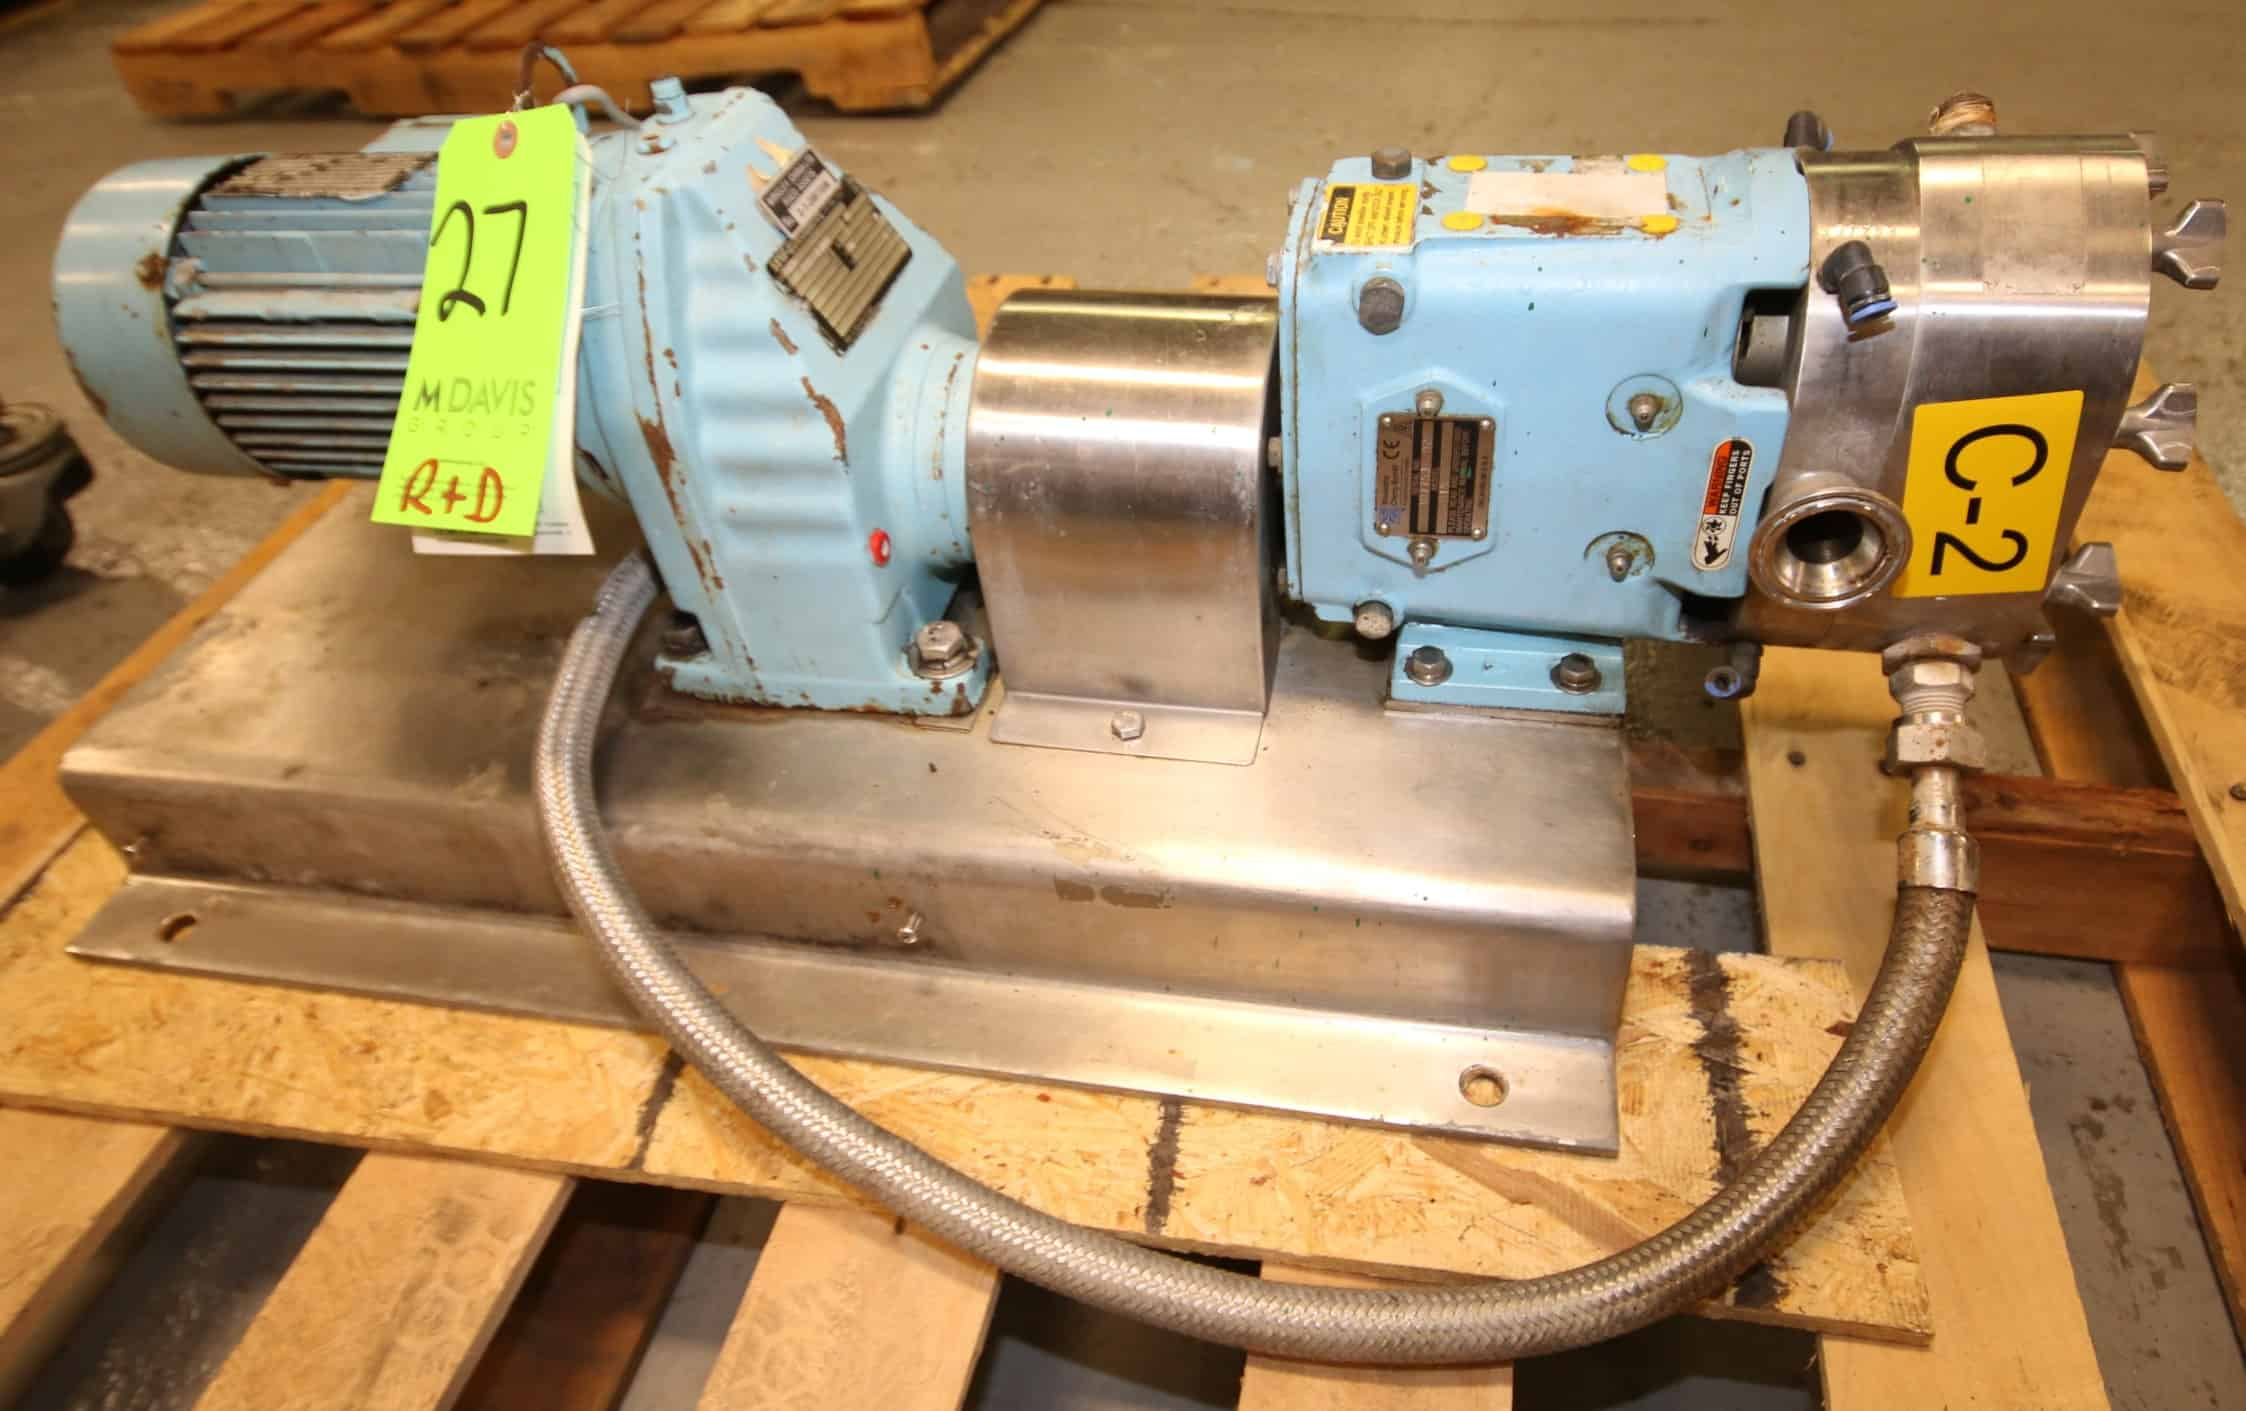 Waukesha Positive Displacement Pump, Model 015, SN 307753 02, with Jacketed Head, 1.5 Clamp Type Connections, Includes Rotors, SEW Drive Motor 075 KW, 220/380 V, Mounted on S/S Frame